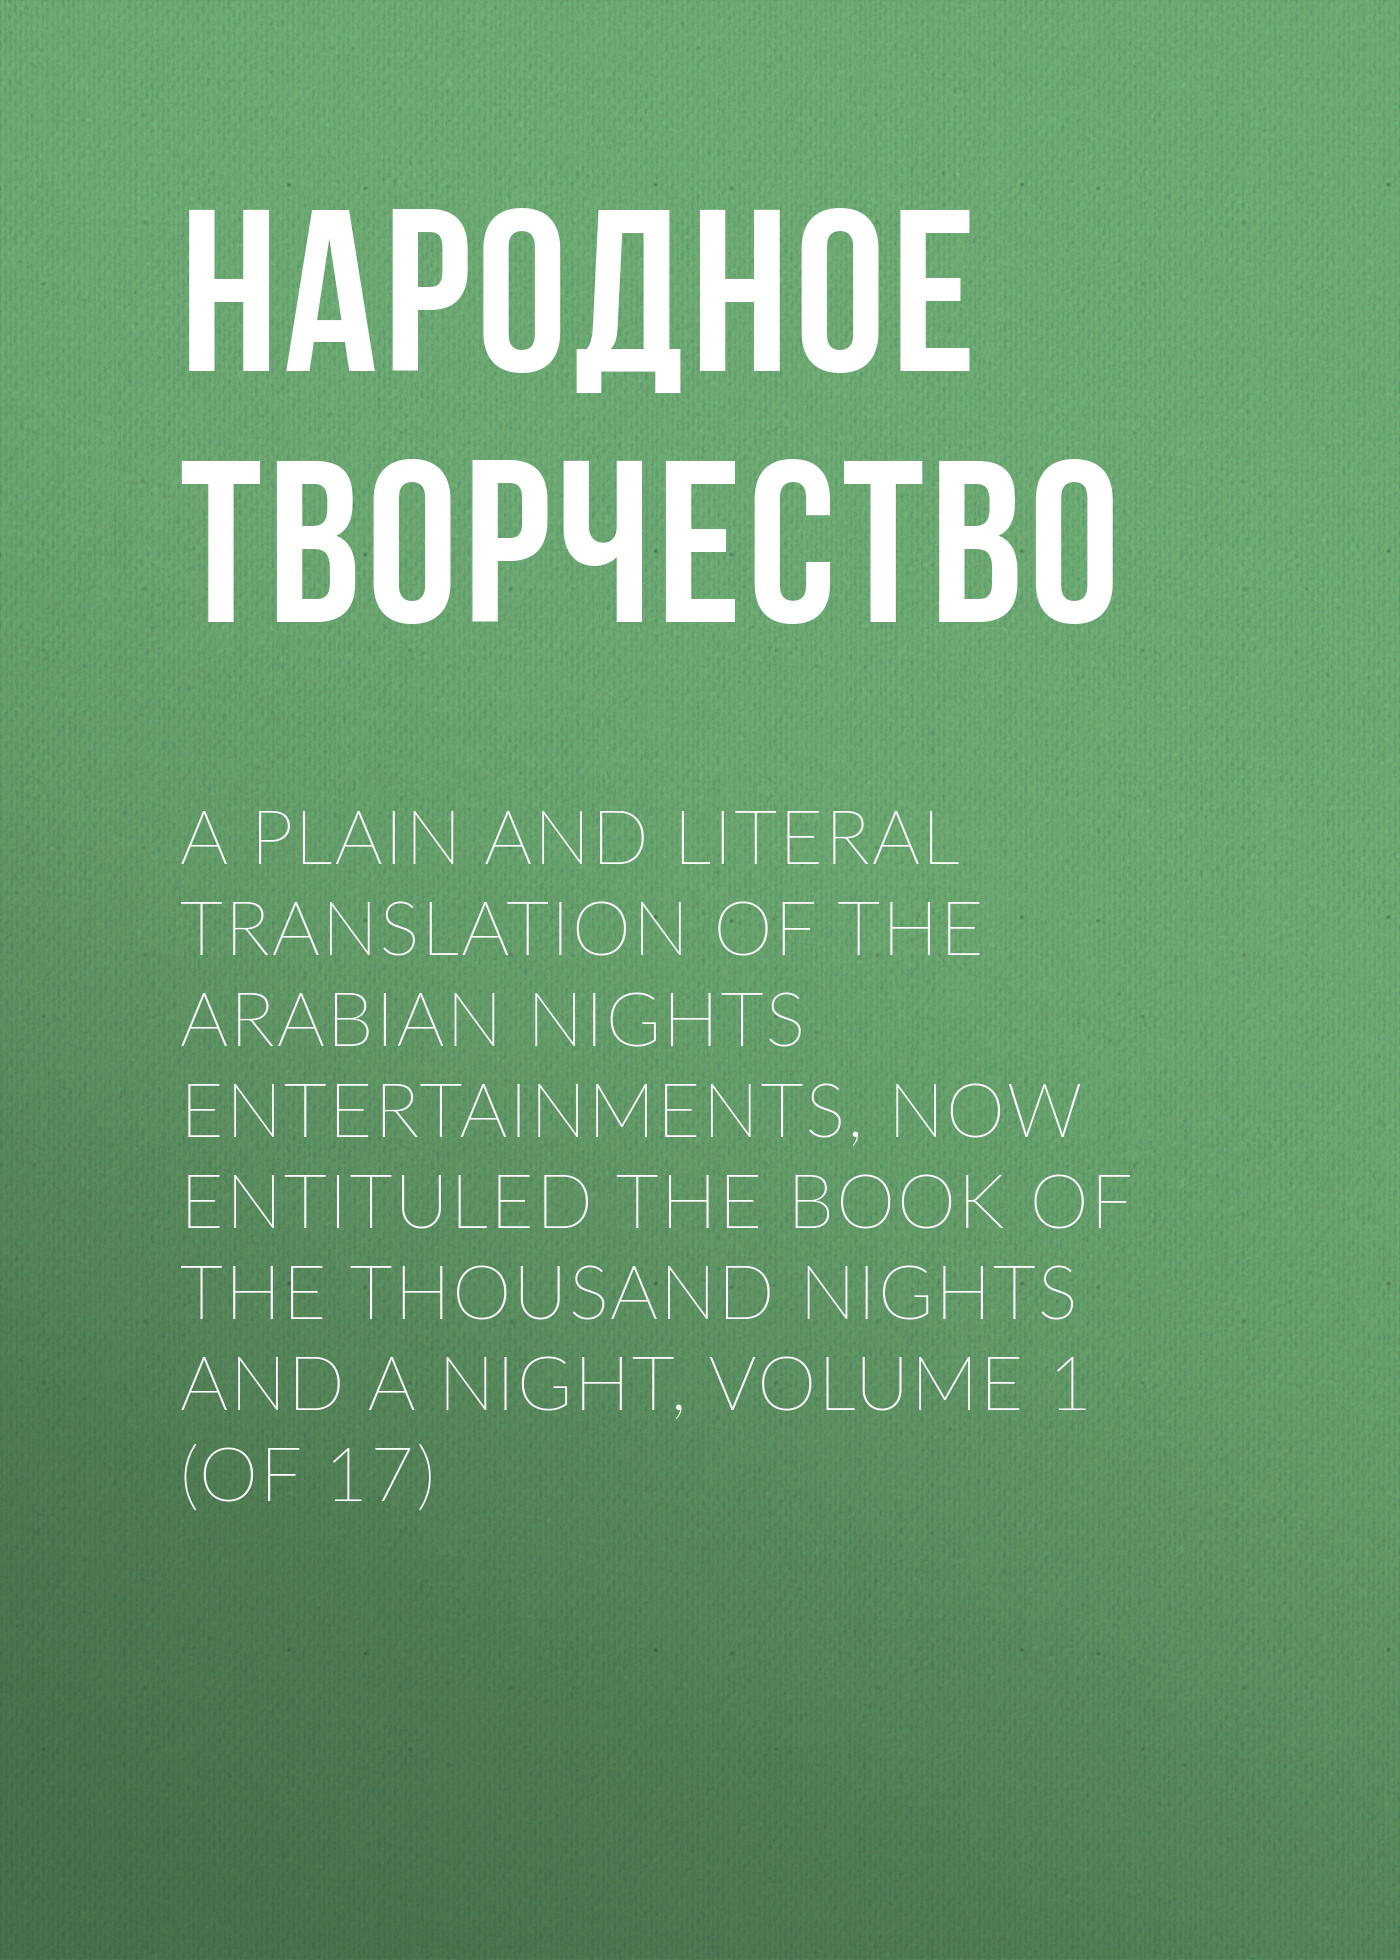 Народное творчество A plain and literal translation of the Arabian nights entertainments, now entituled The Book of the Thousand Nights and a Night, Volume 1 (of 17) a maze of death